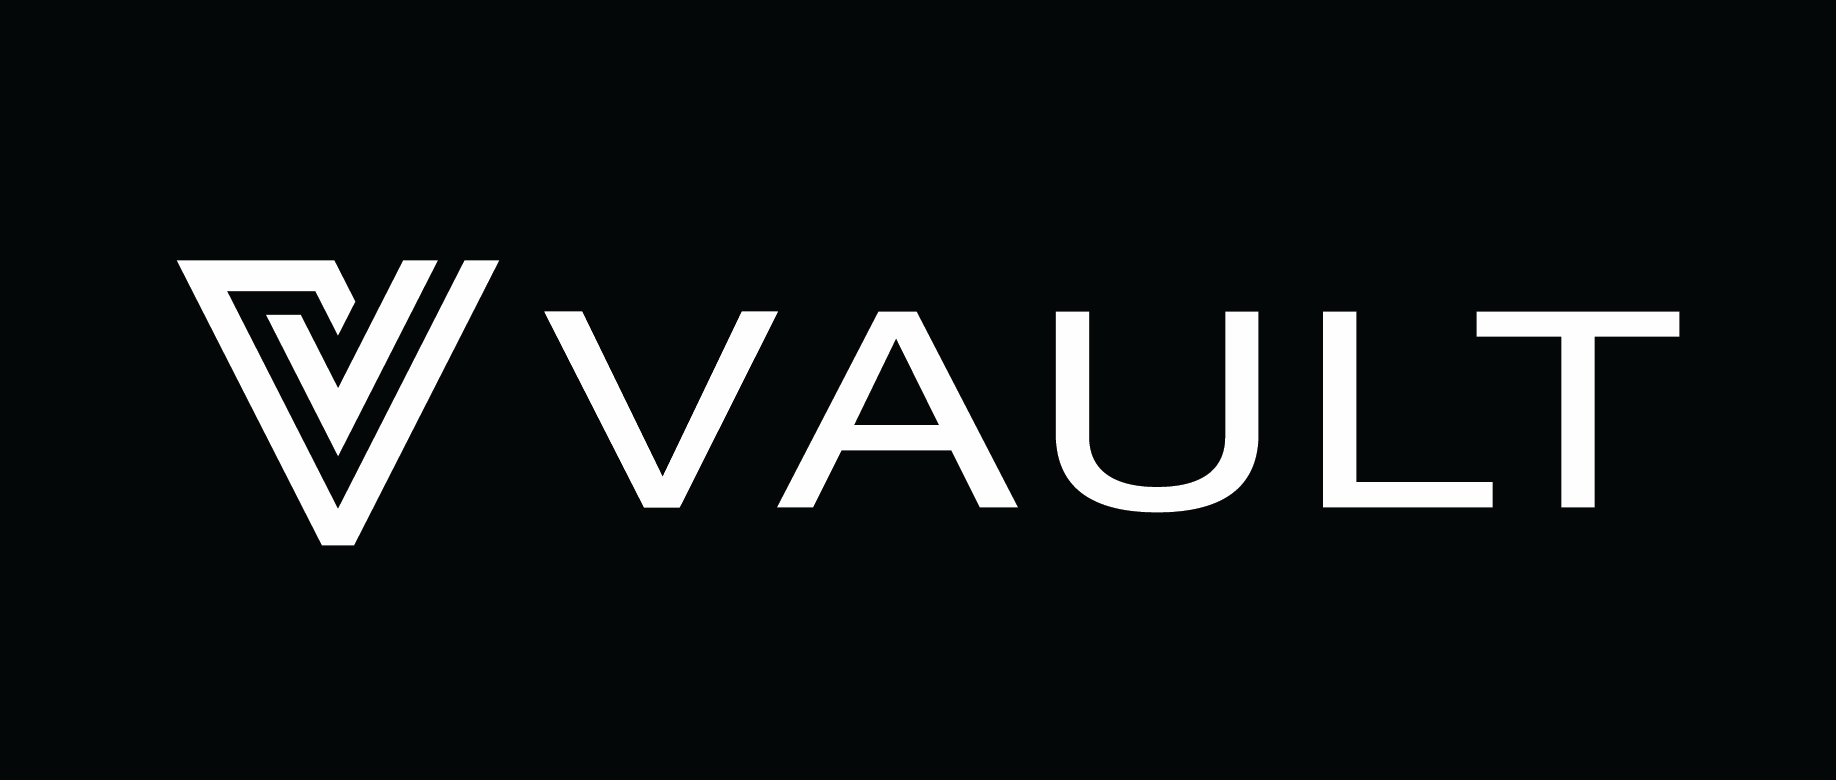 Vault logo white on black background